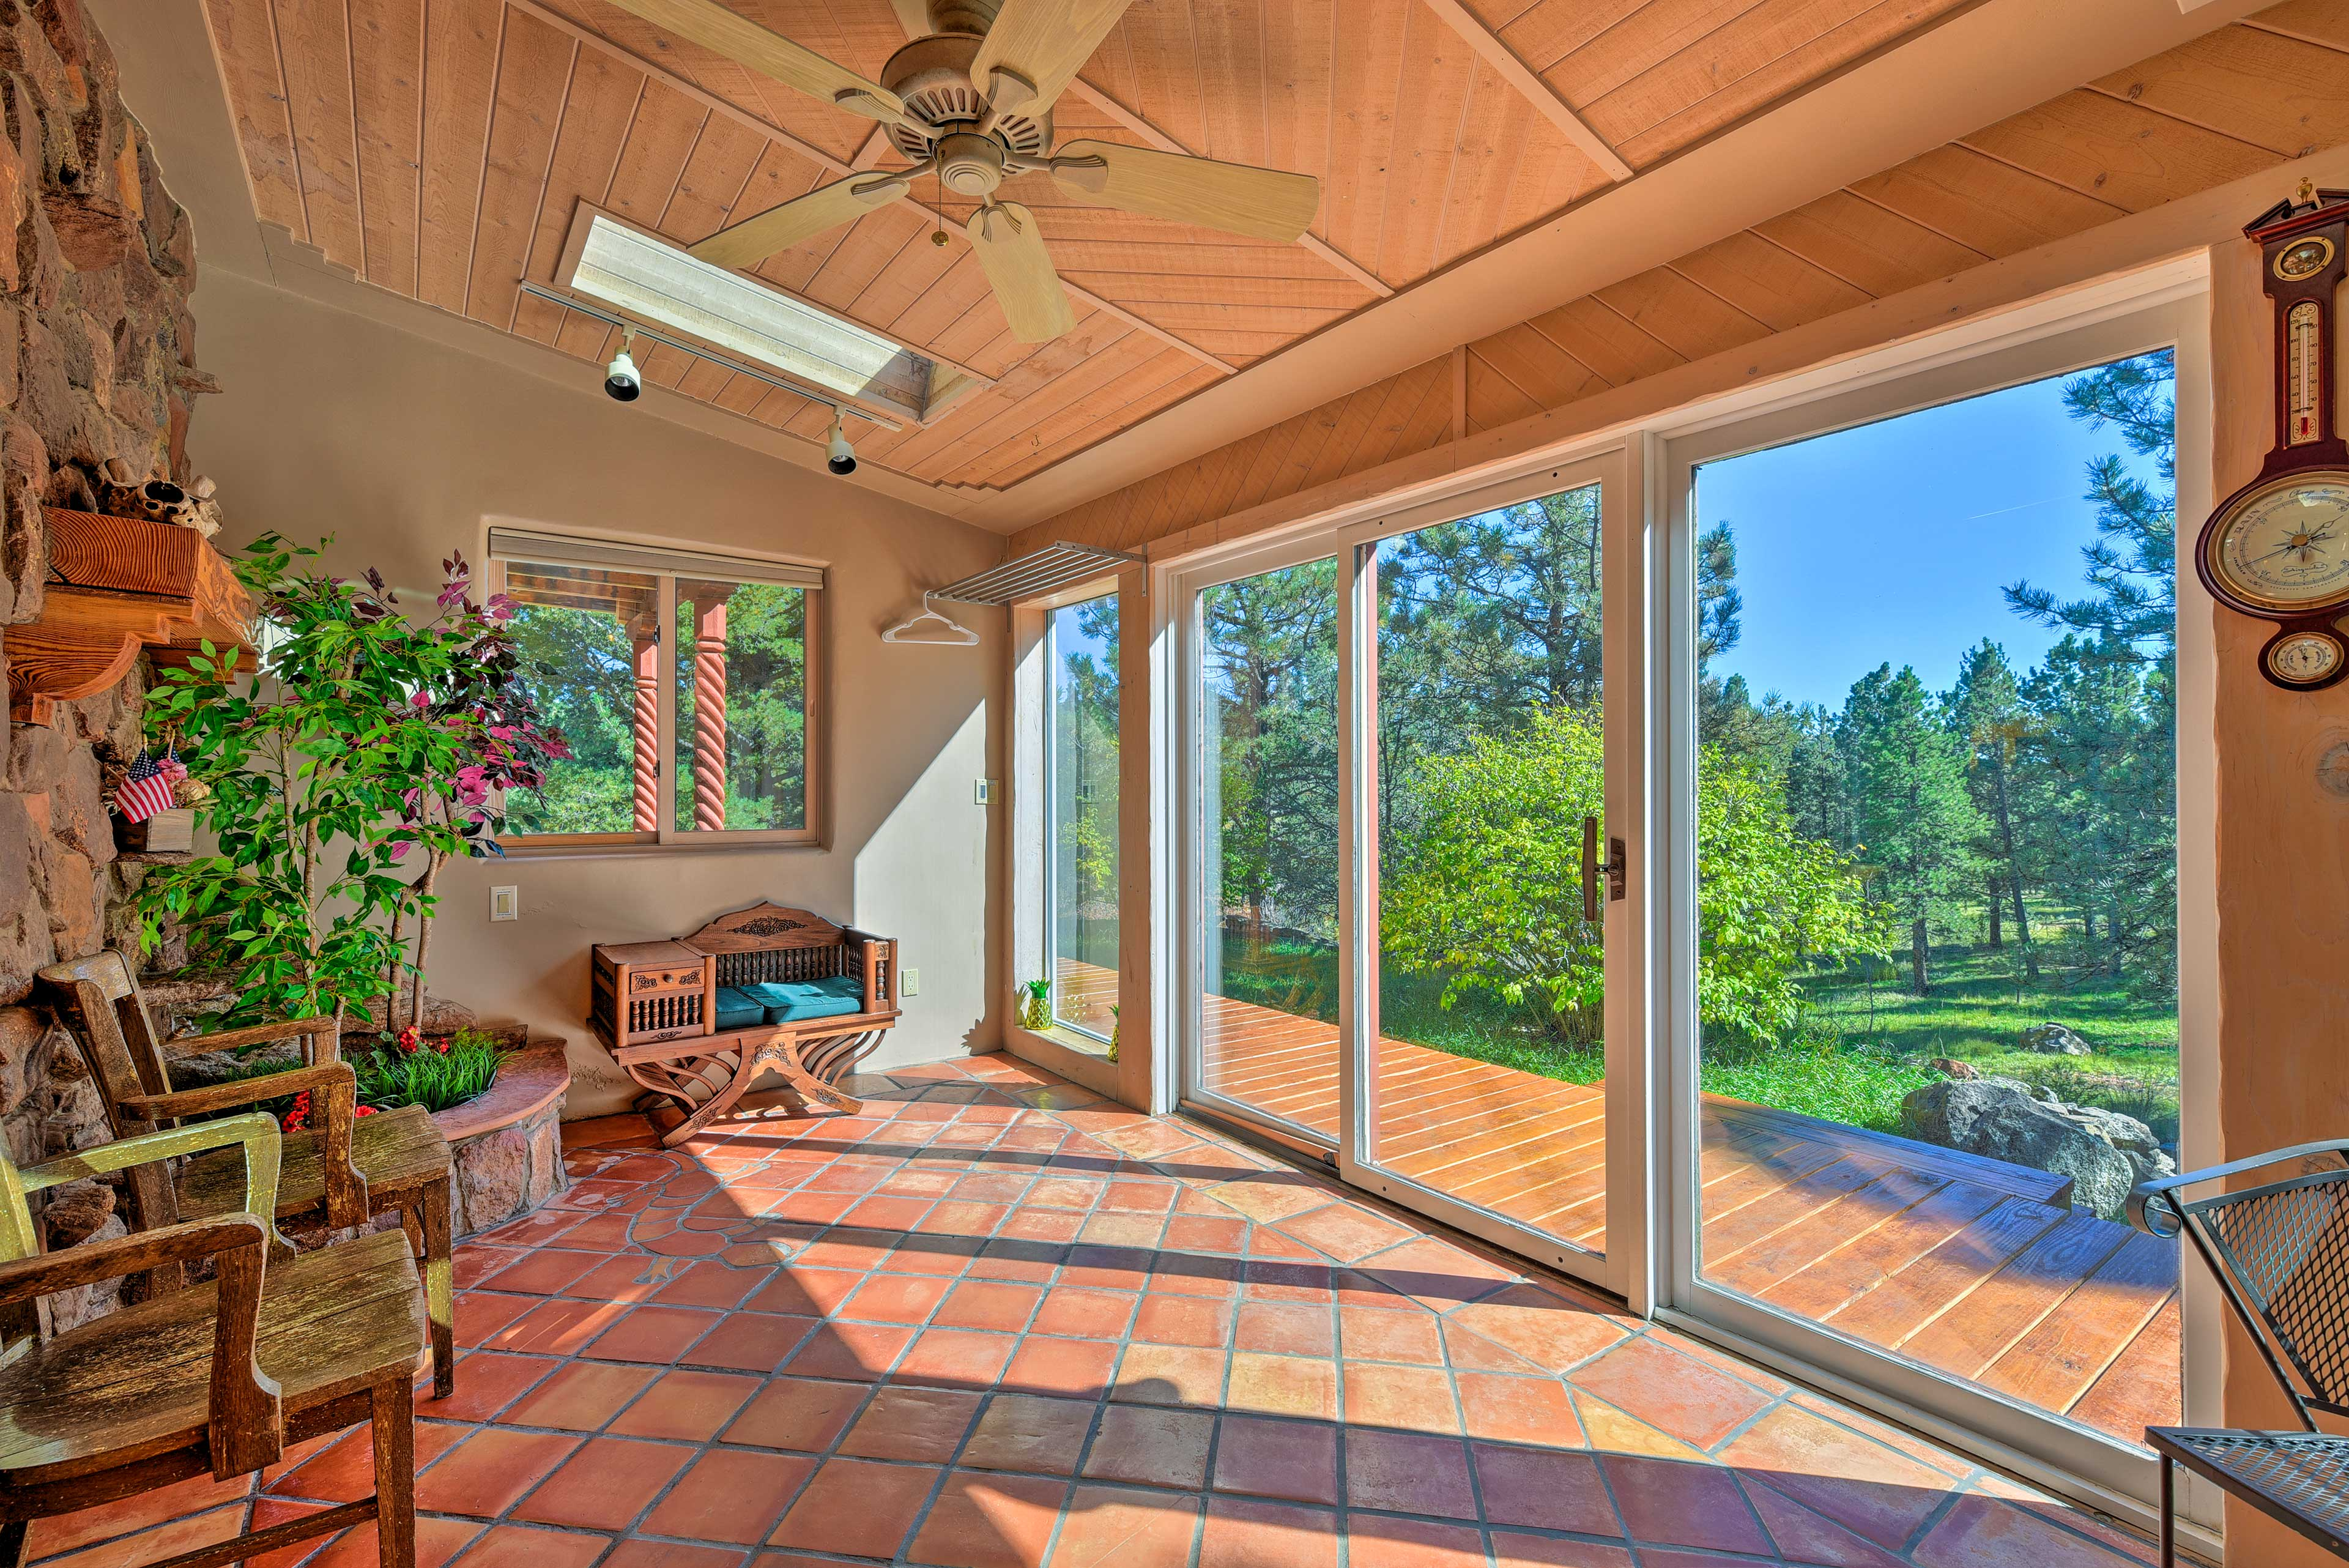 Boasting 5 private acres, 4 bedrooms and 3 baths, this home offers a great stay!